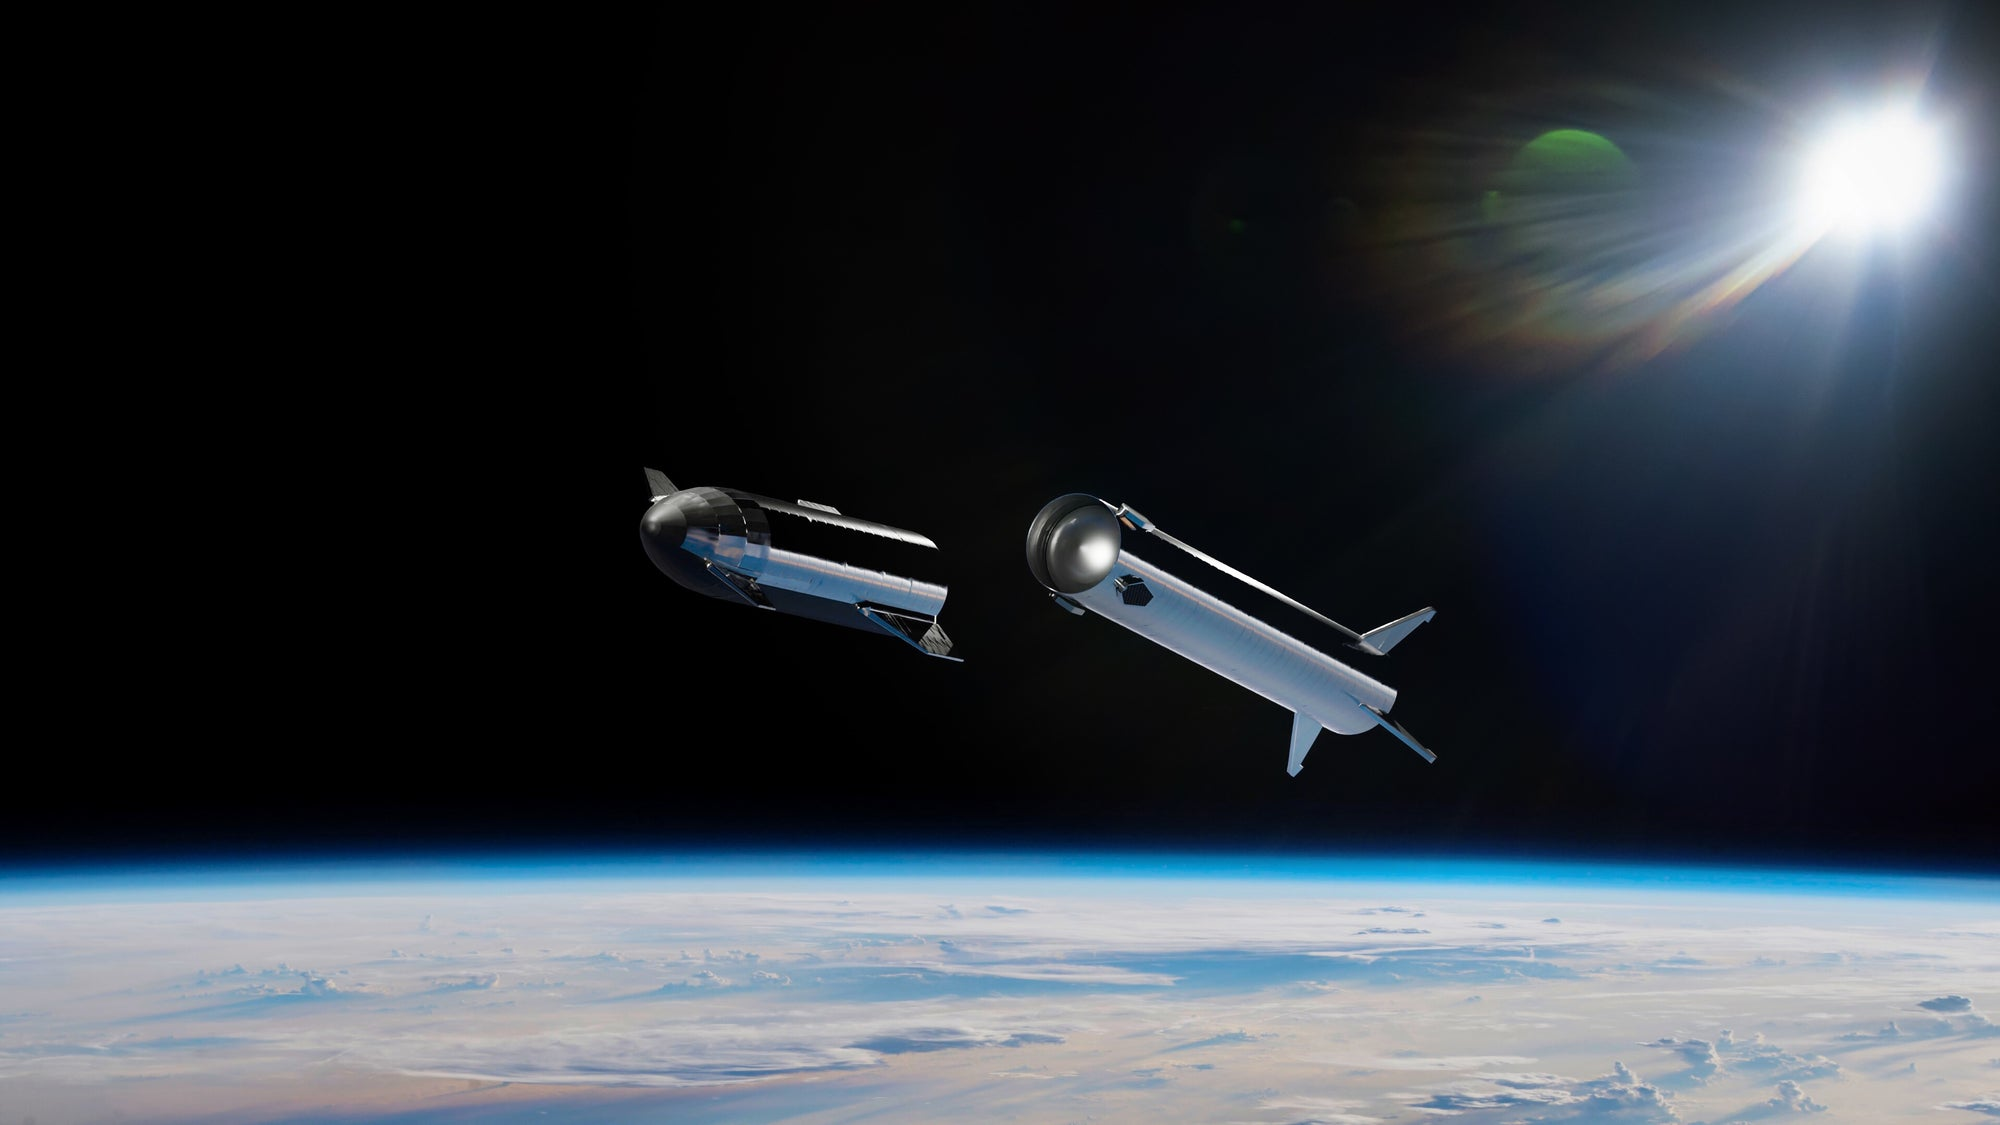 SpaceX Plans To Fly Starship From Texas To Hawaii During First Orbital Flight